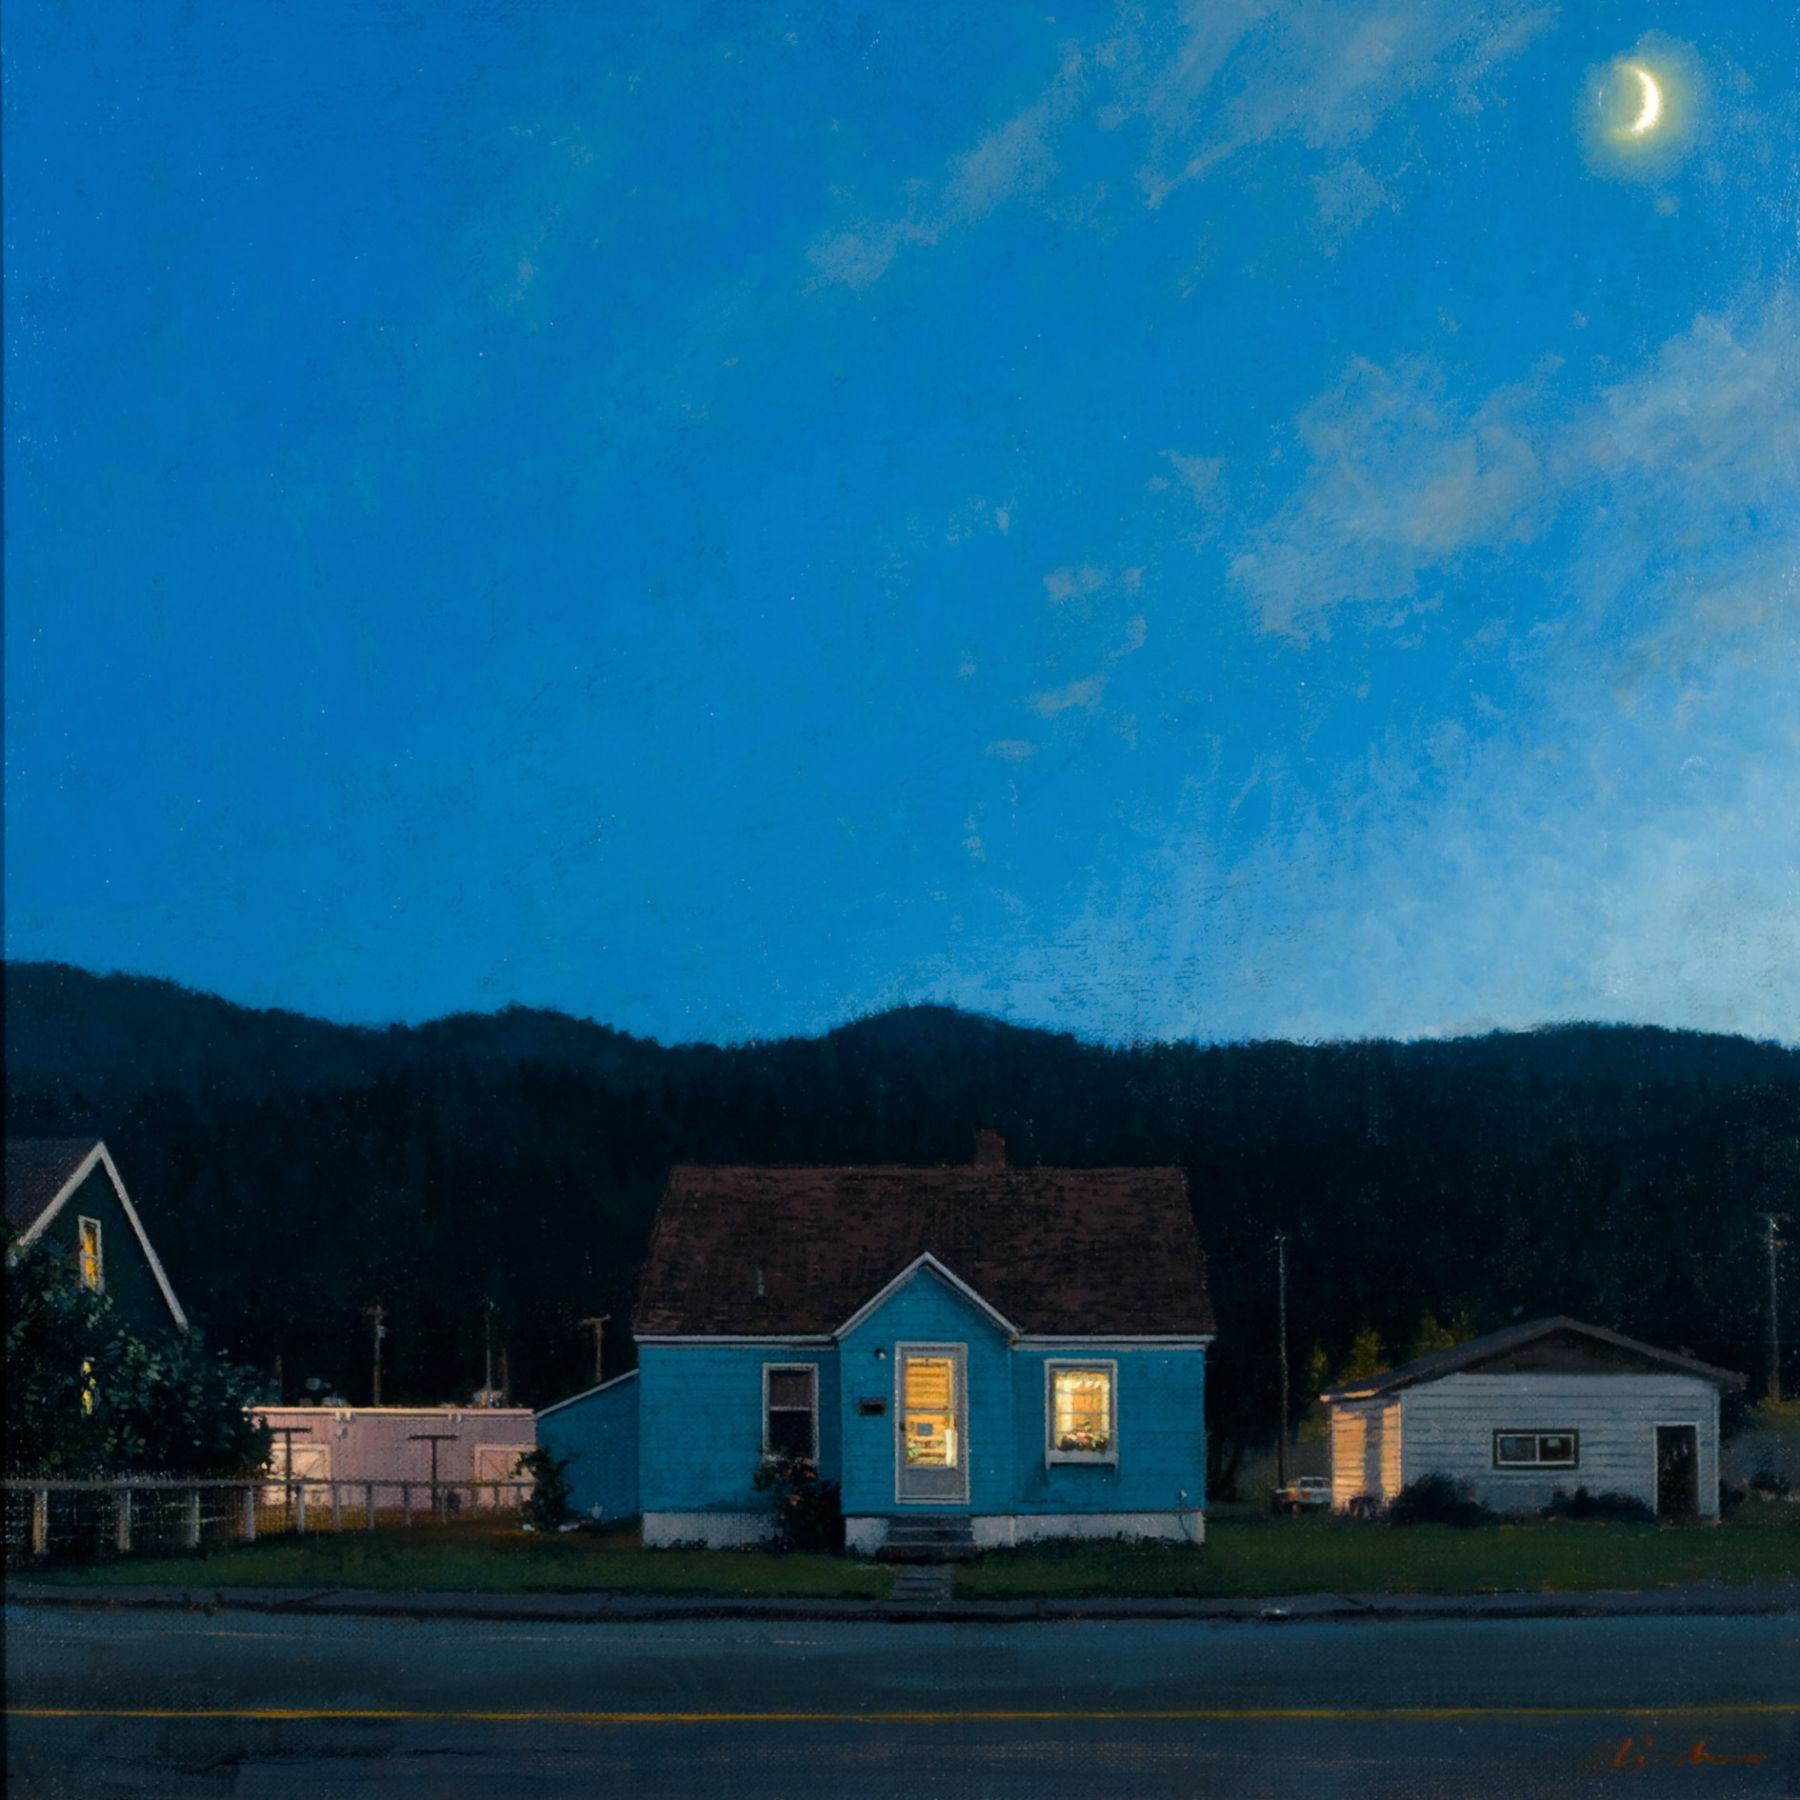 Linden Frederick, Idaho (SOLD), 2007, oil on panel, 12 1/4 x 12 1/4 inches